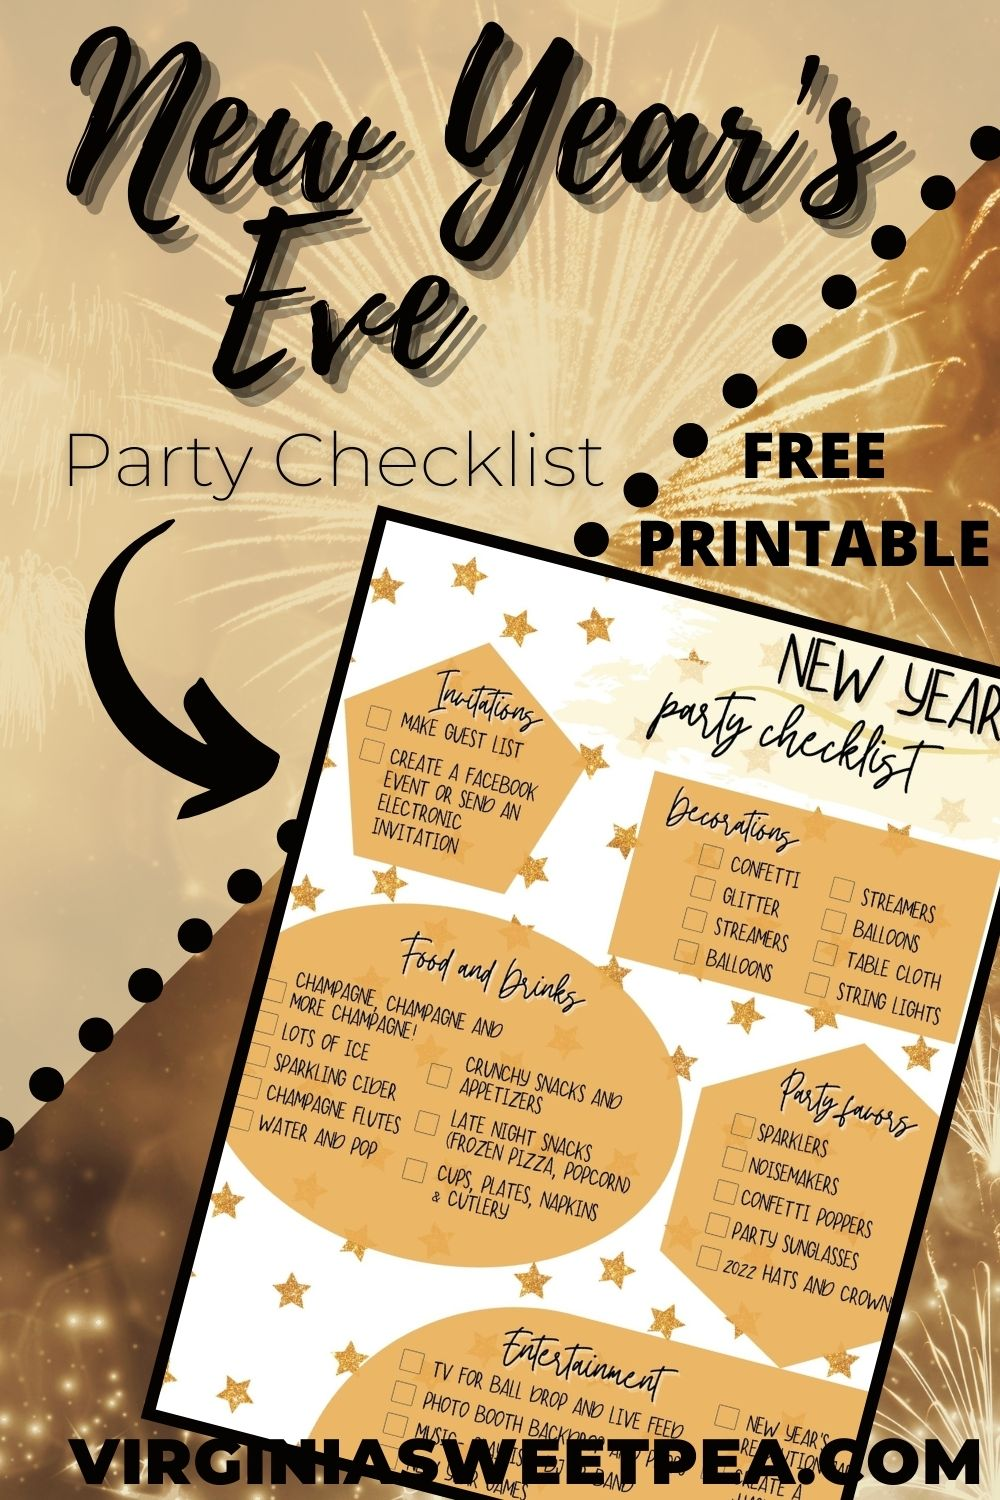 Free Printable New Year's Eve Party Checklist